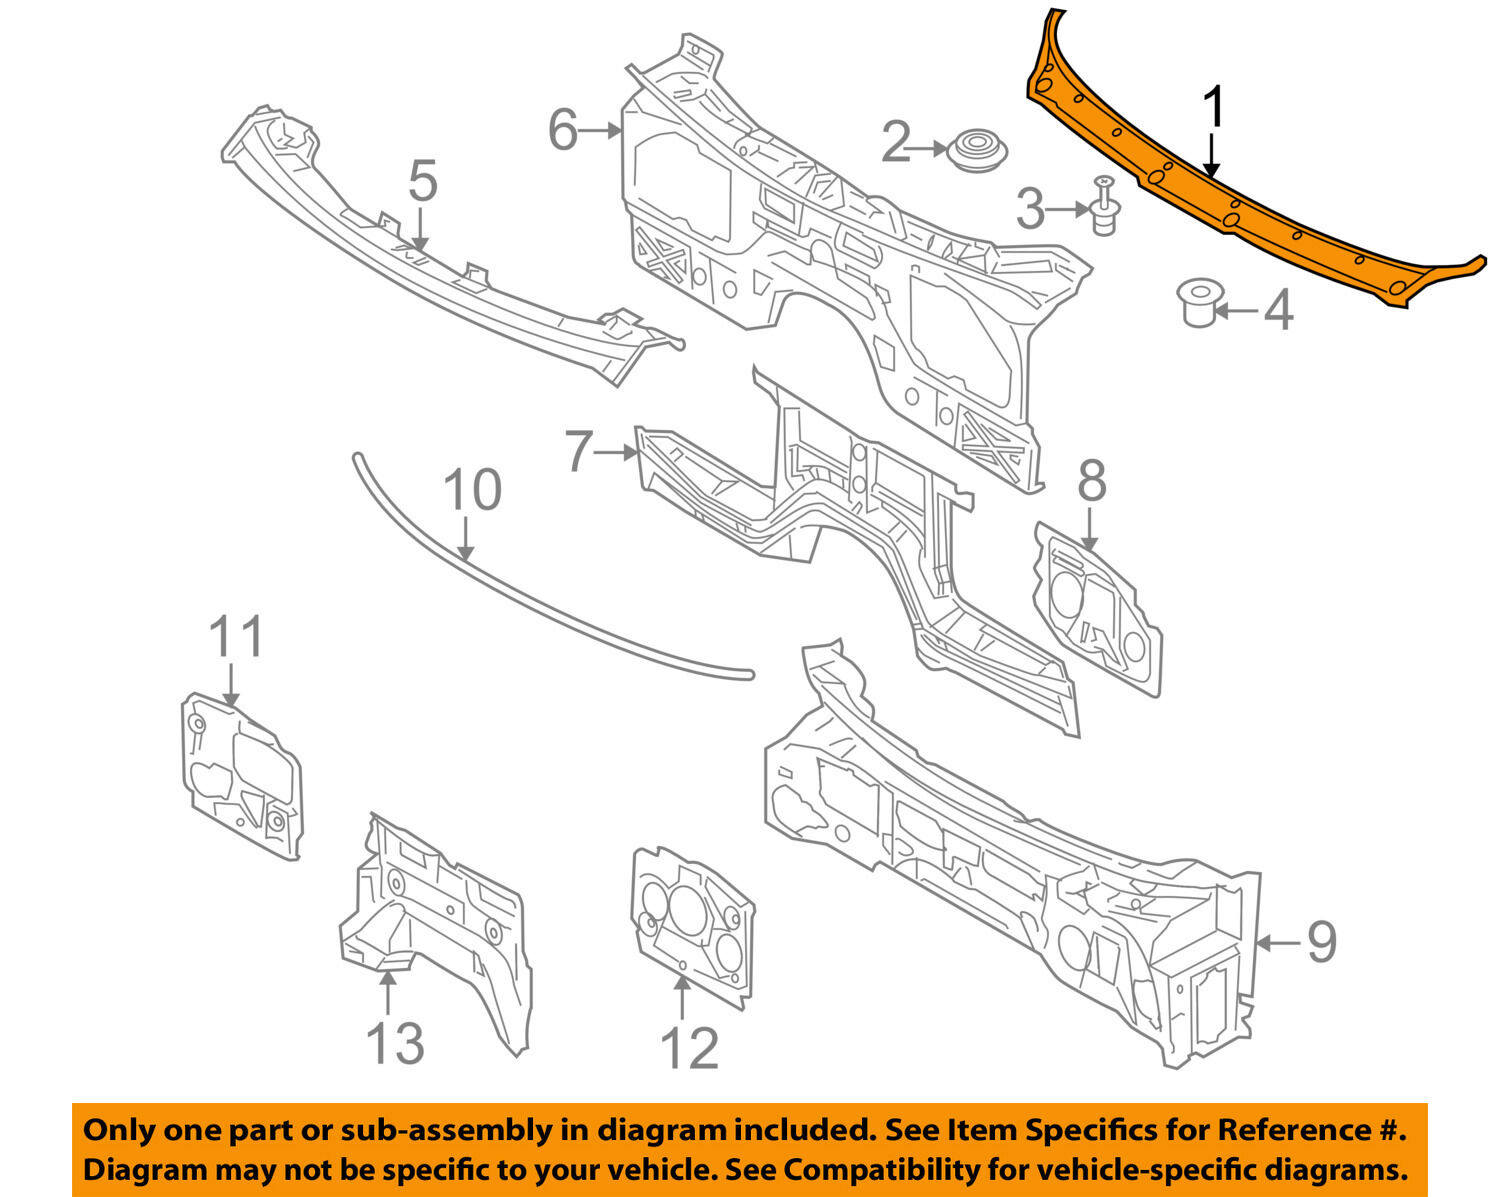 Bmw Oem 08 14 X6 Cowl Panel Windshield Wiper Motor Cover 51717151969 Wiring Diagram 1 Of 2only Available